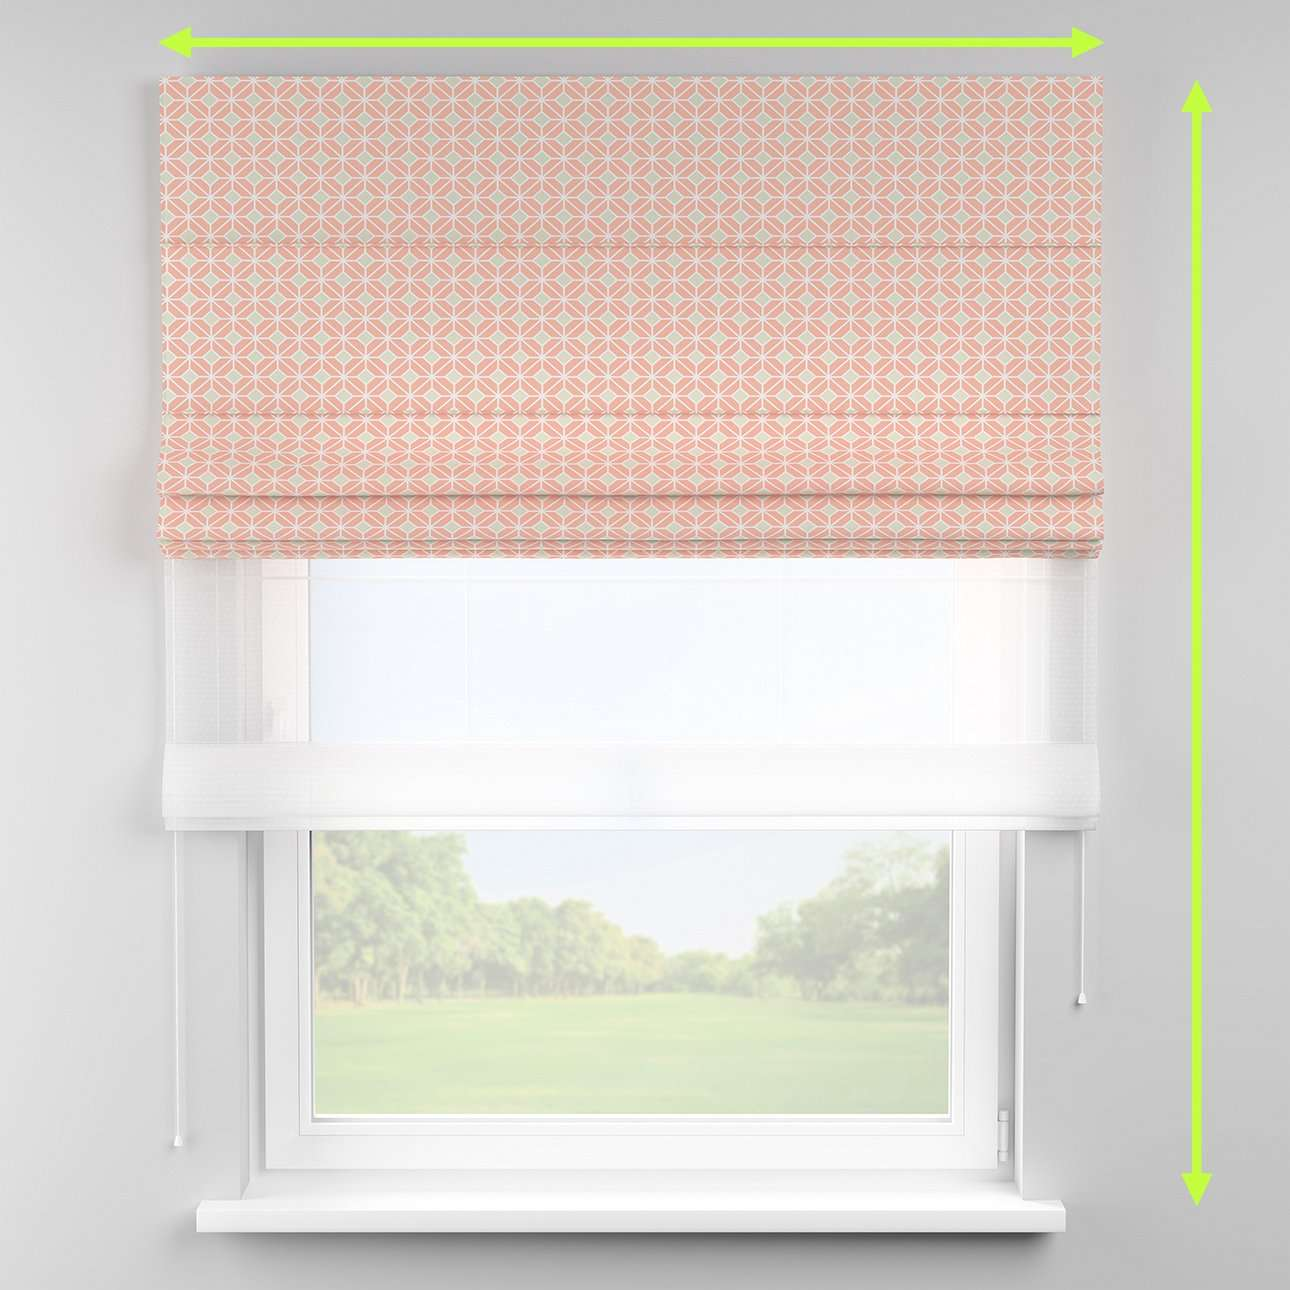 Voile and fabric roman blind (DUO II) in collection Geometric, fabric: 141-48